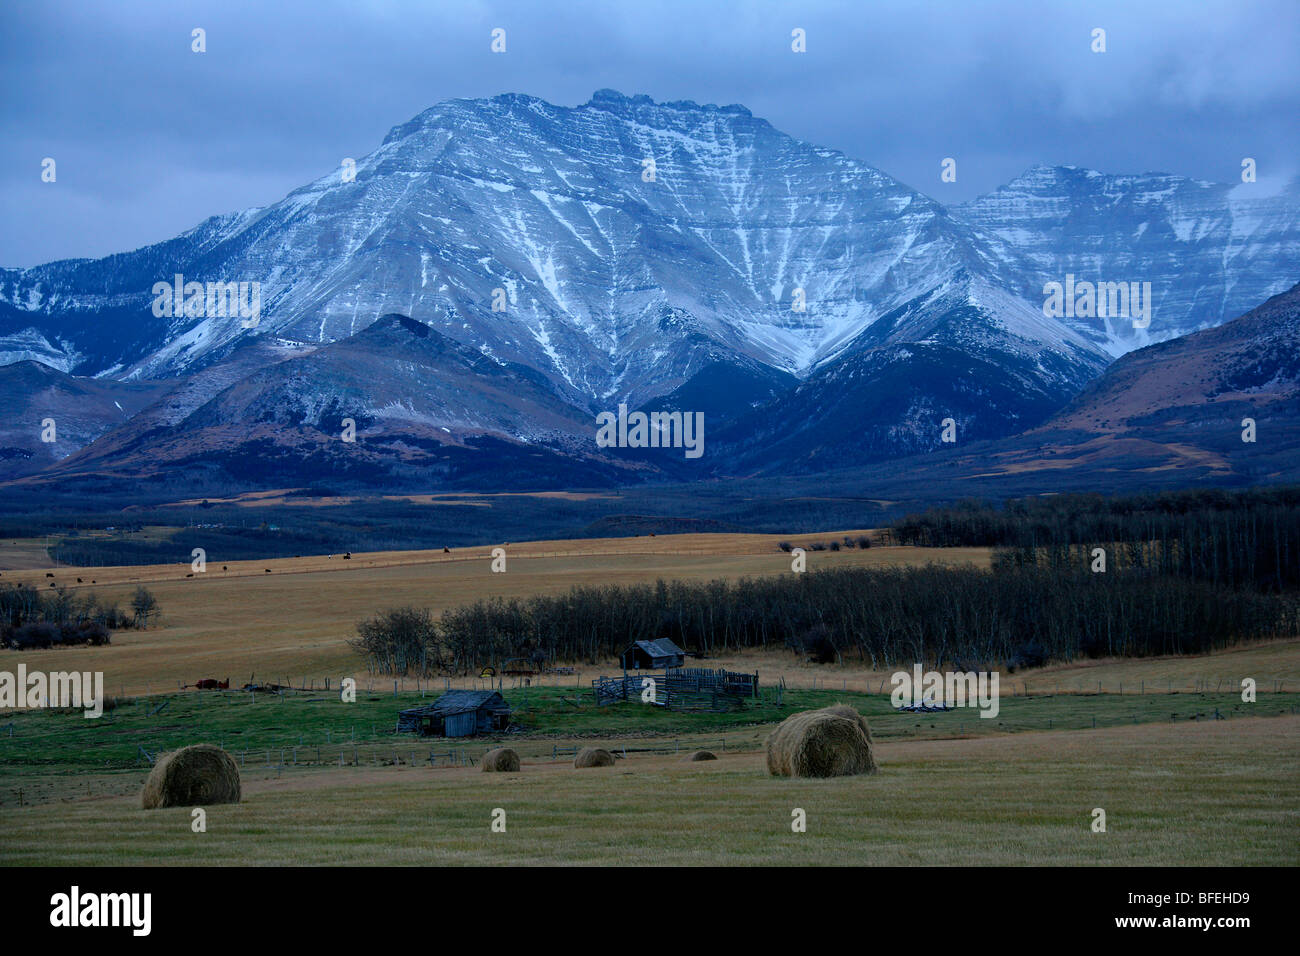 Abandoned farmstead with hay field around it outside of Waterton Lakes National Park, Alberta, Canada - Stock Image